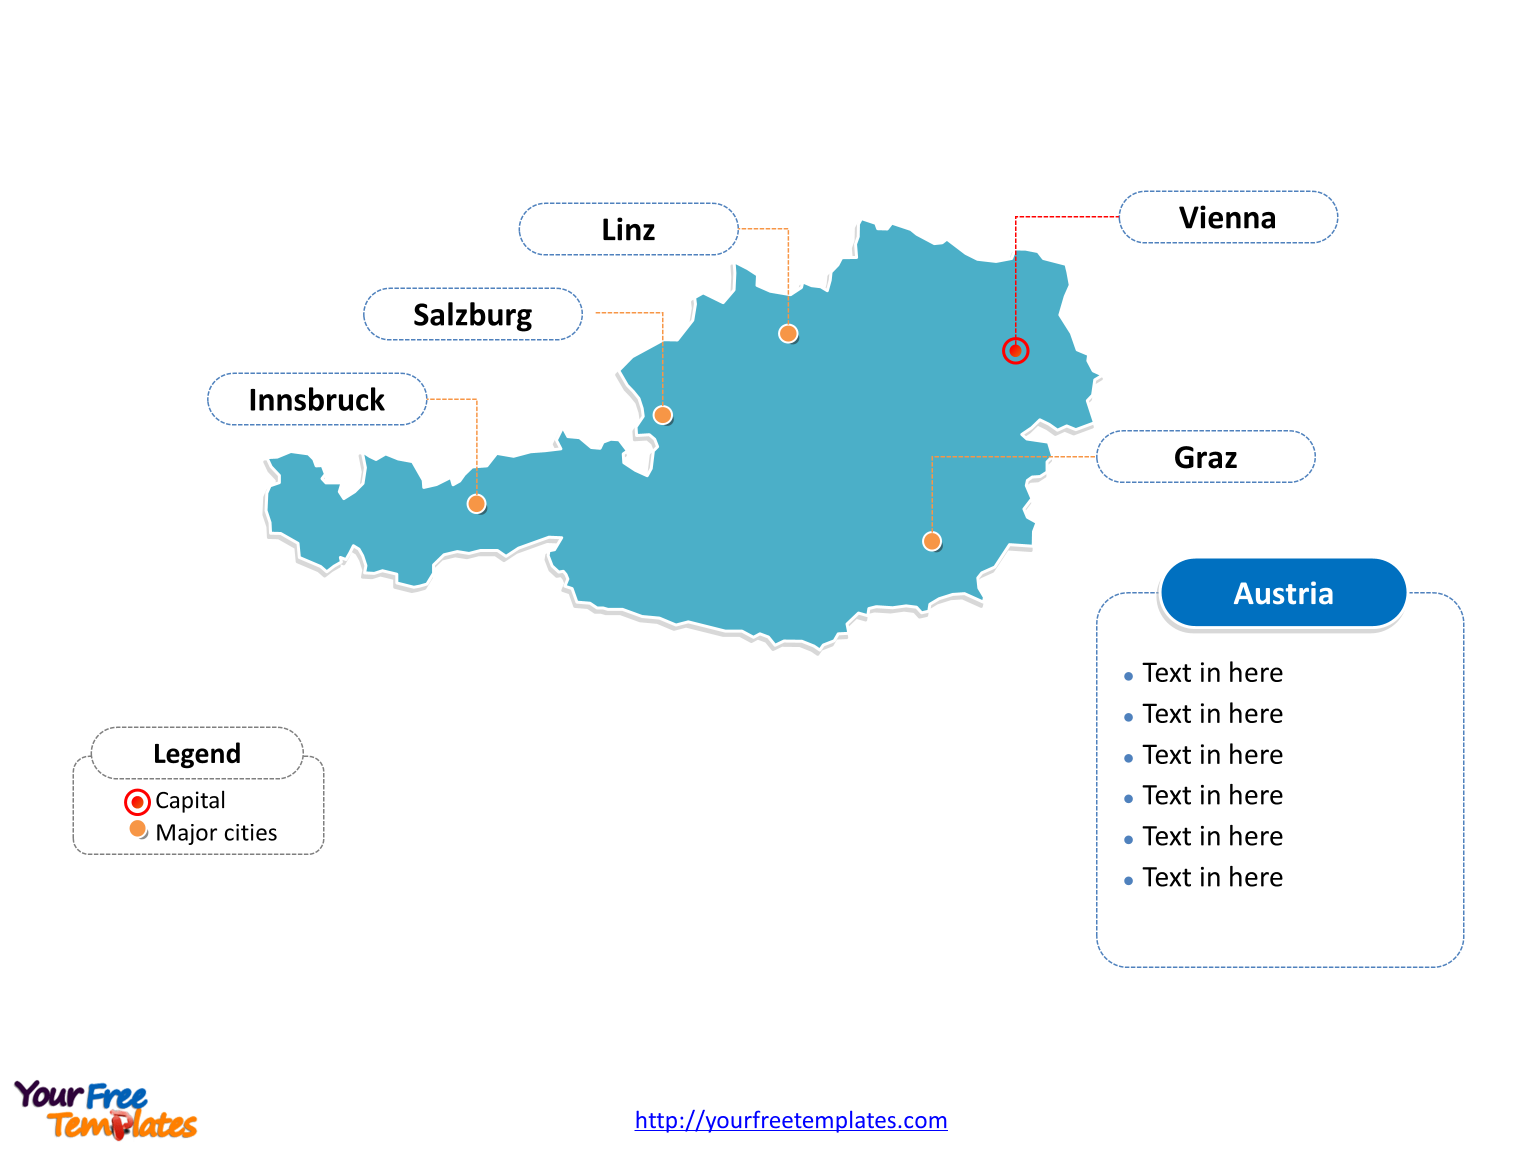 Free Austria Editable Map Free PowerPoint Templates - Vienna austria on world map